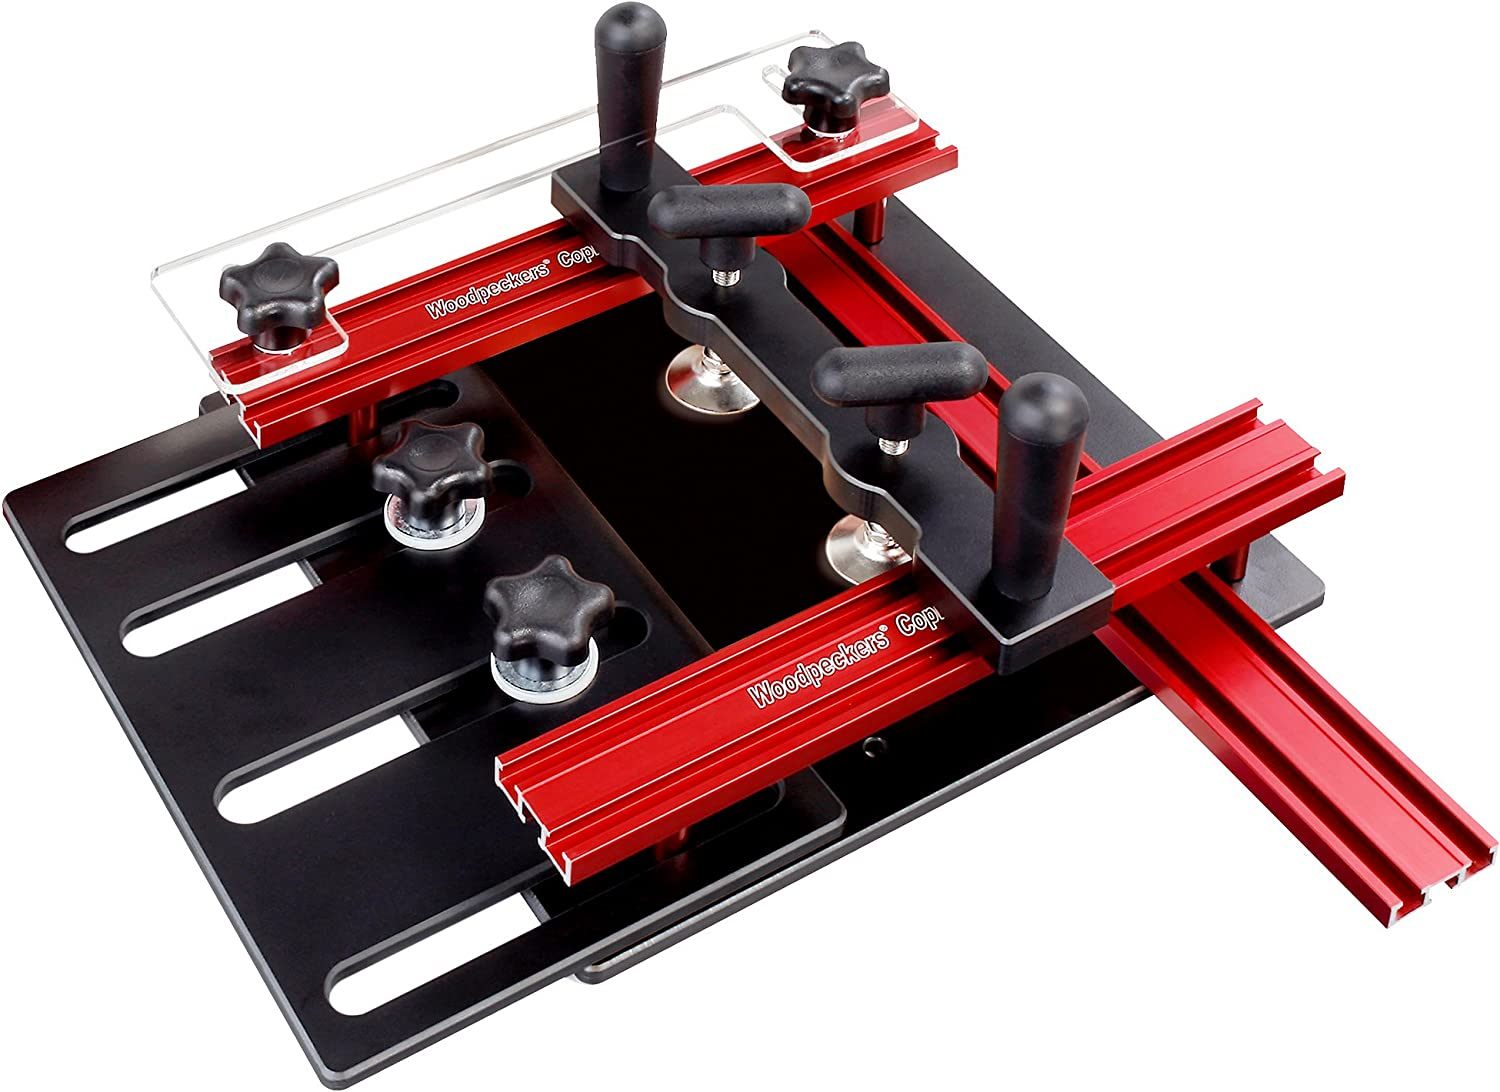 Woodpeckers Precison Woodworking Router Table Coping Sled